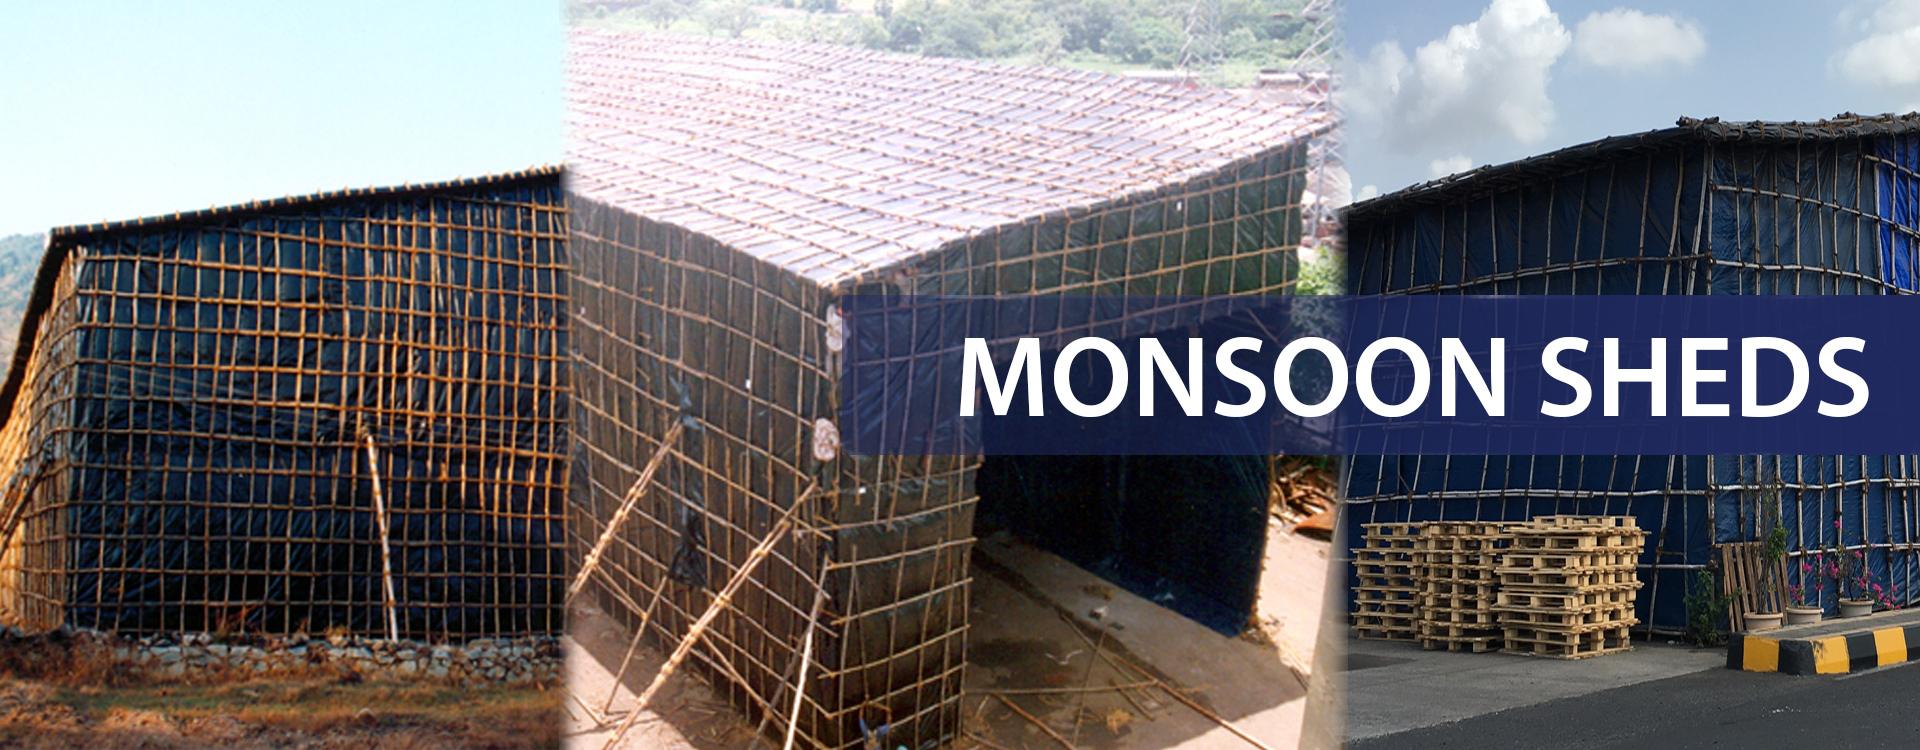 Mansoon Shed